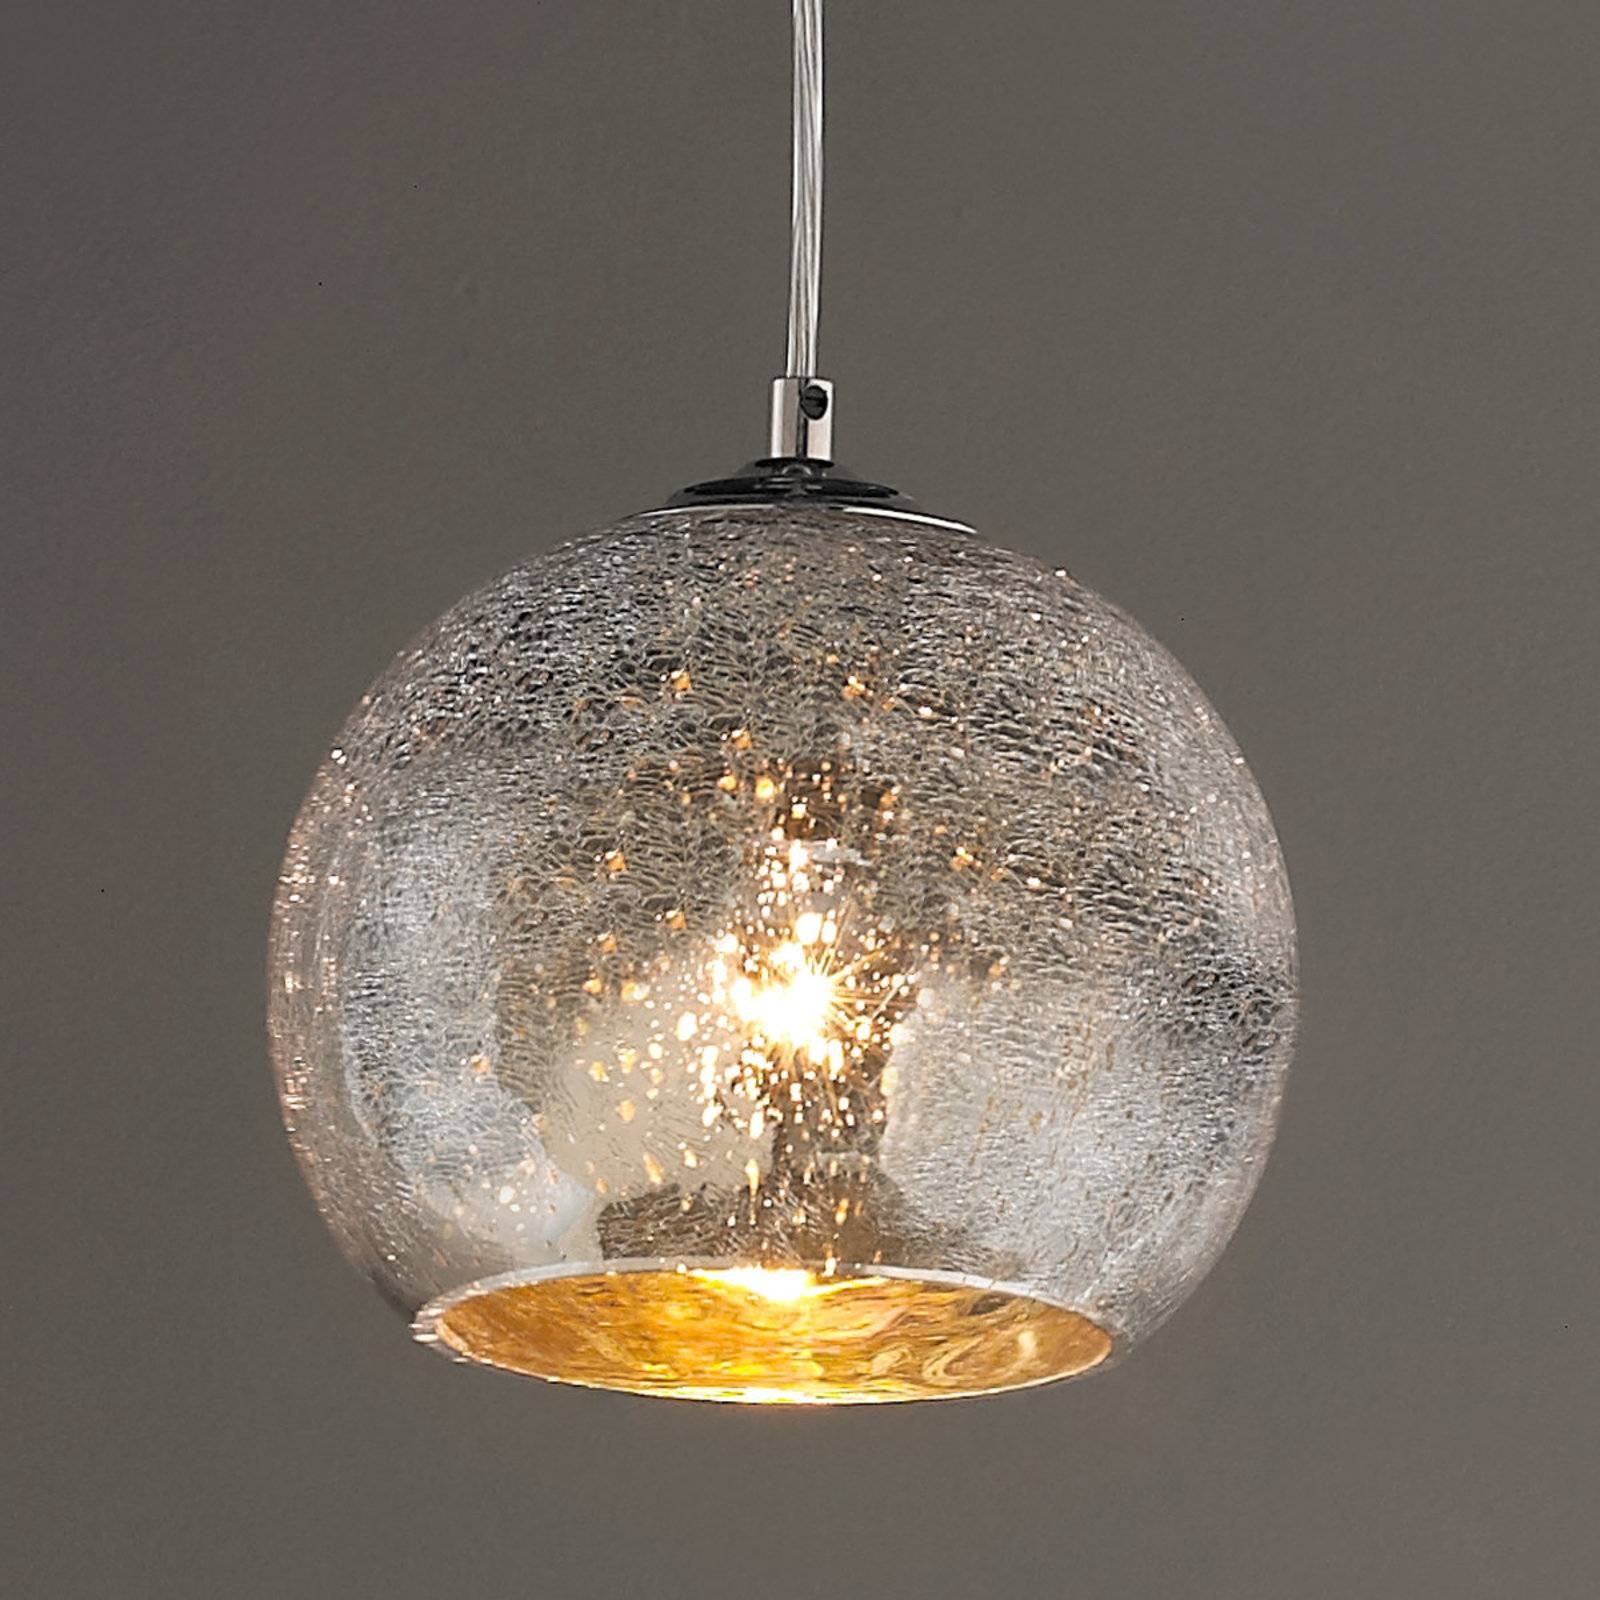 Lamp : Pendant Light Linear Pendant Lighting Bubble Glass Pendant with regard to Mercury Glass Pendant Light Fixtures (Image 7 of 15)